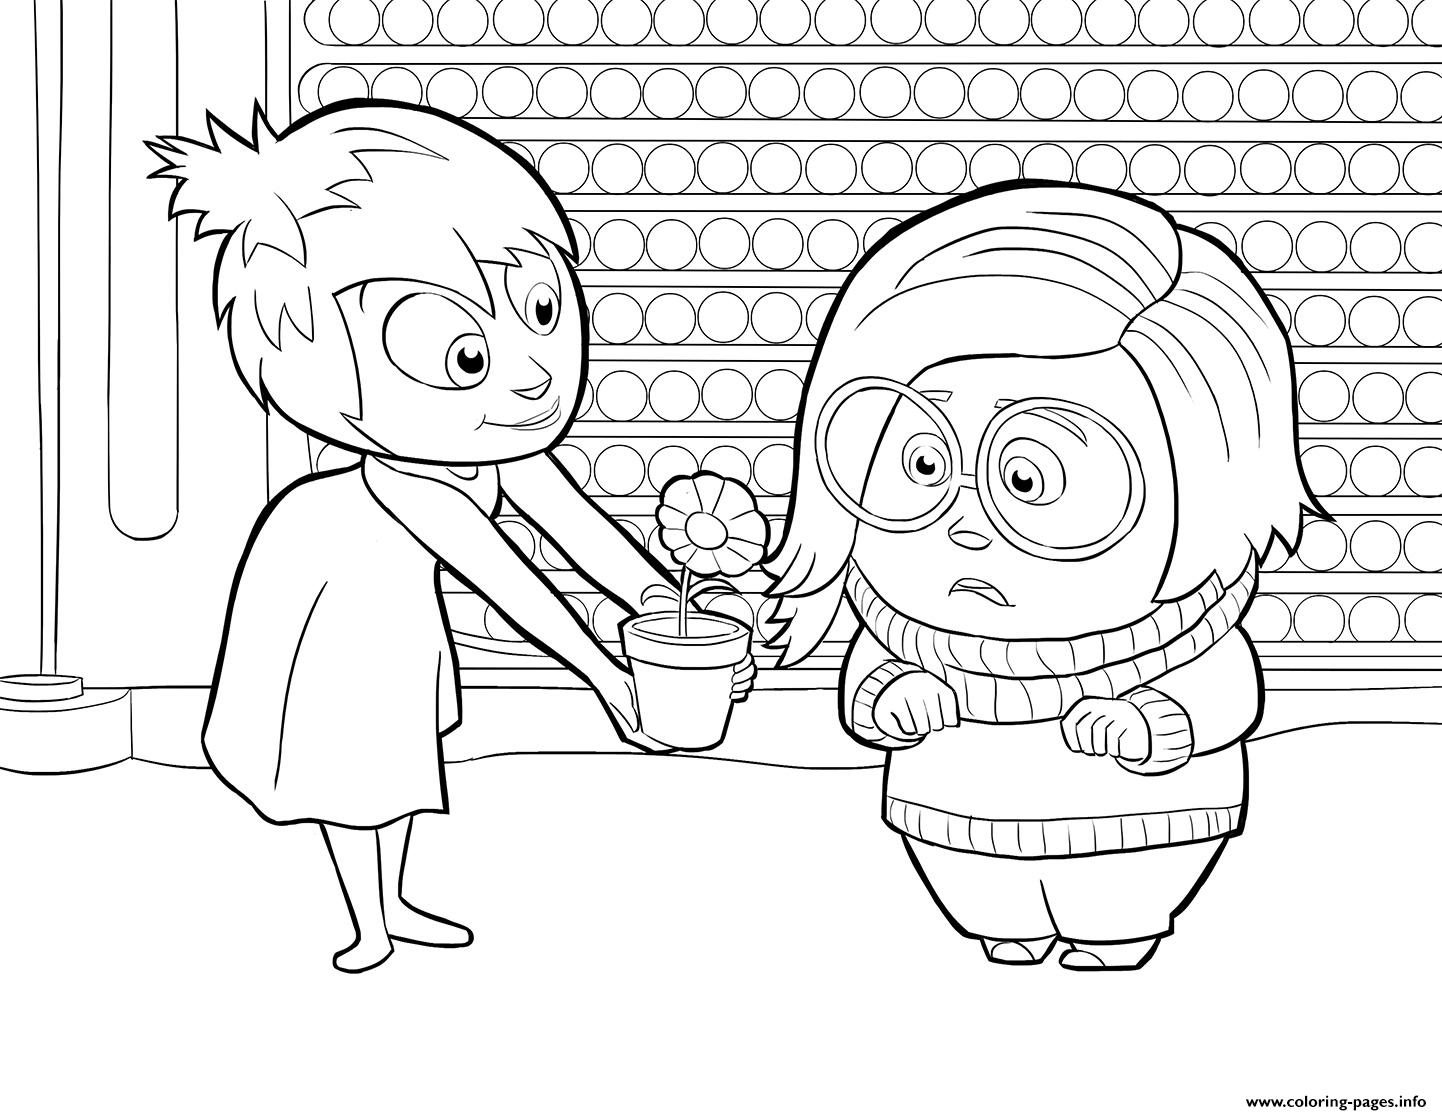 Inside out coloring pages - Joy And Sadness Inside Out Coloring Pages